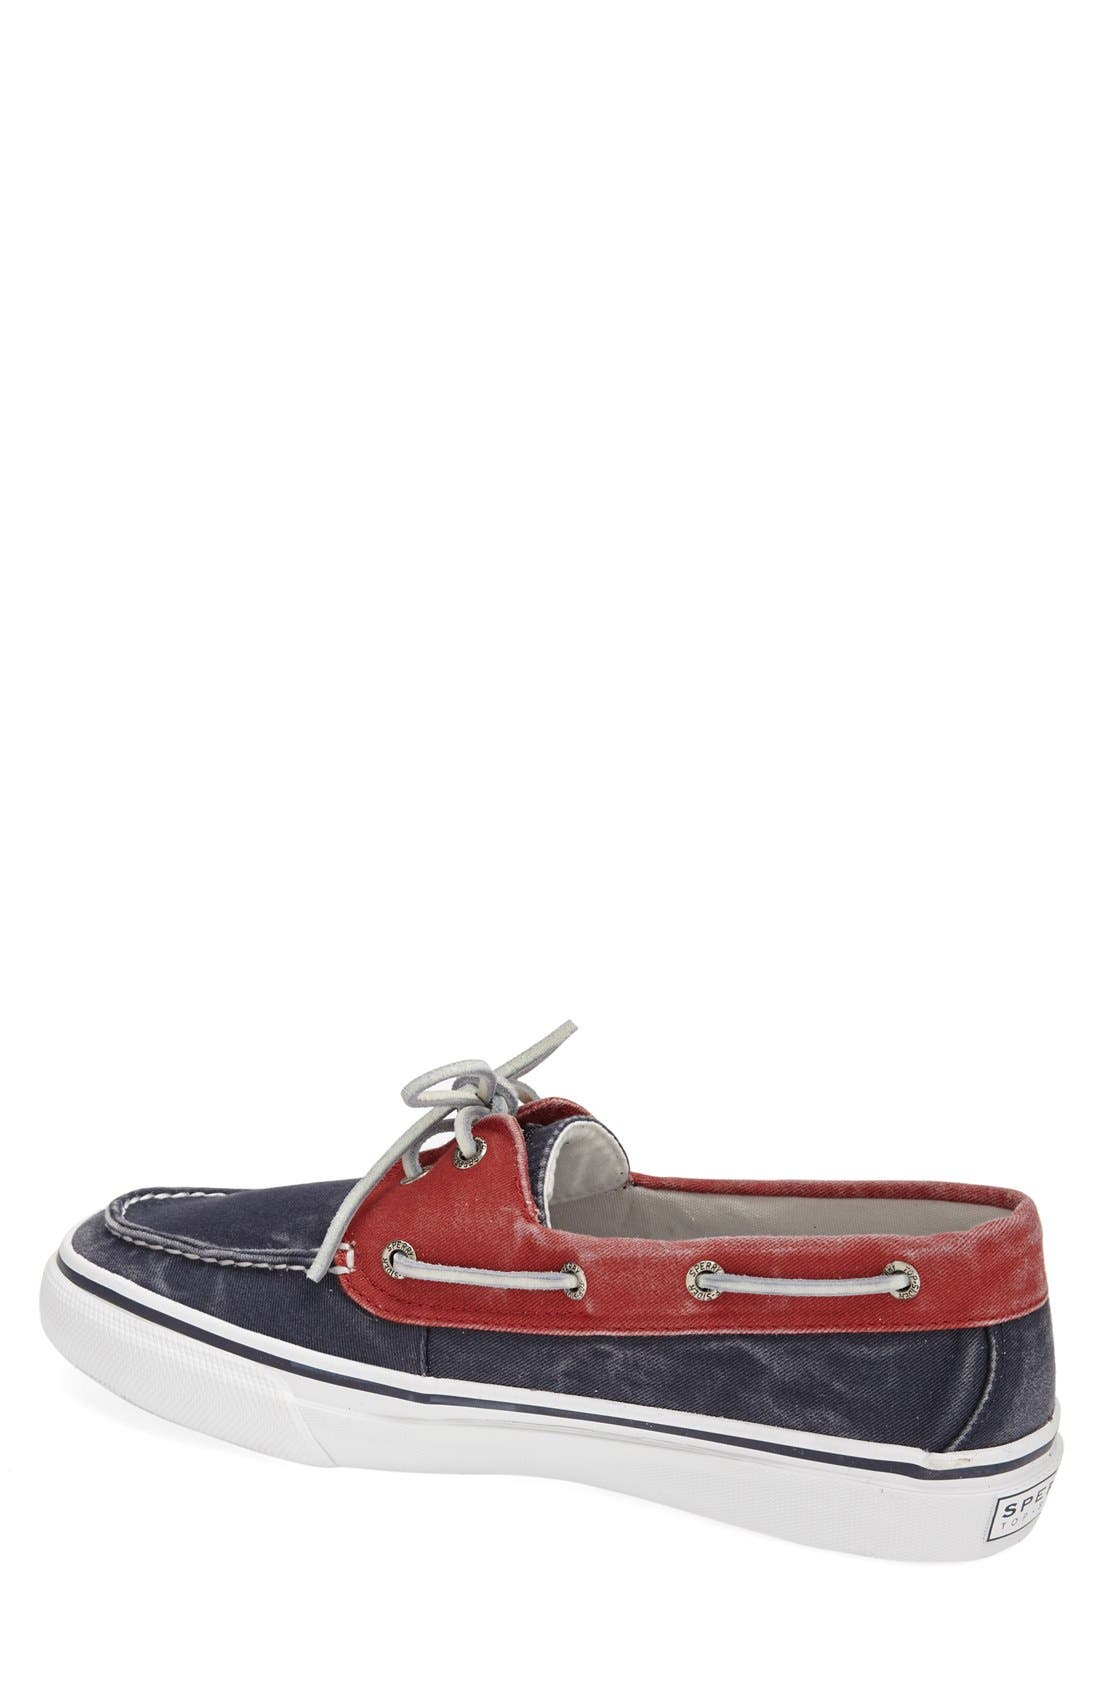 Alternate Image 2  - Sperry 'Bahama' Boat Shoe